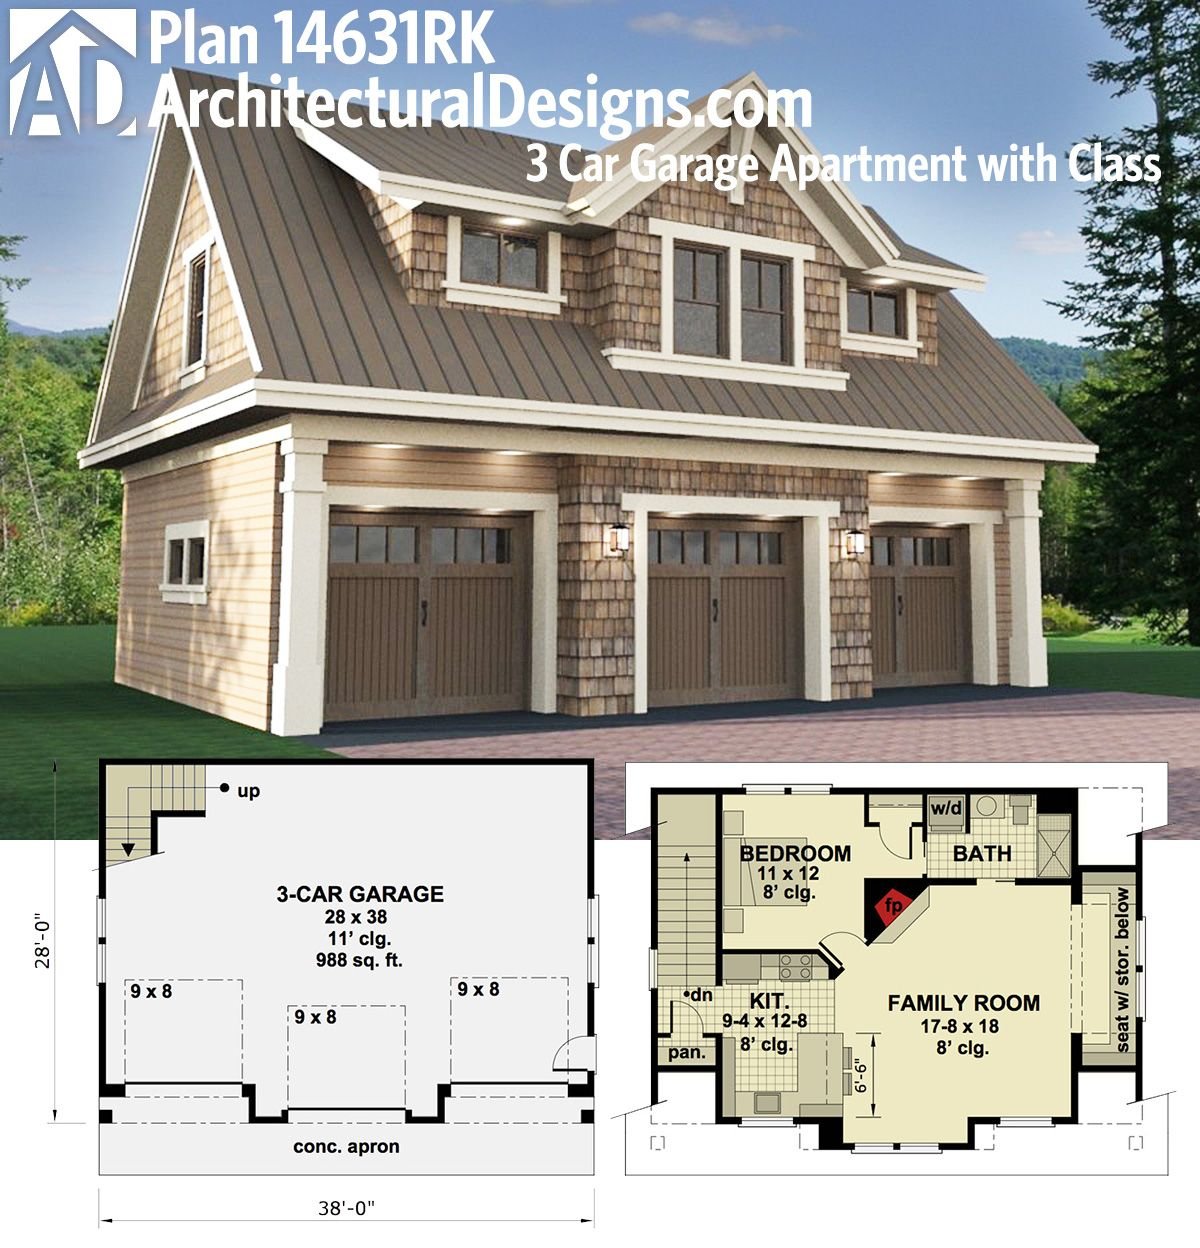 Plan 14631rk 3 car garage apartment with class carriage for 3 bedroom garage apartment